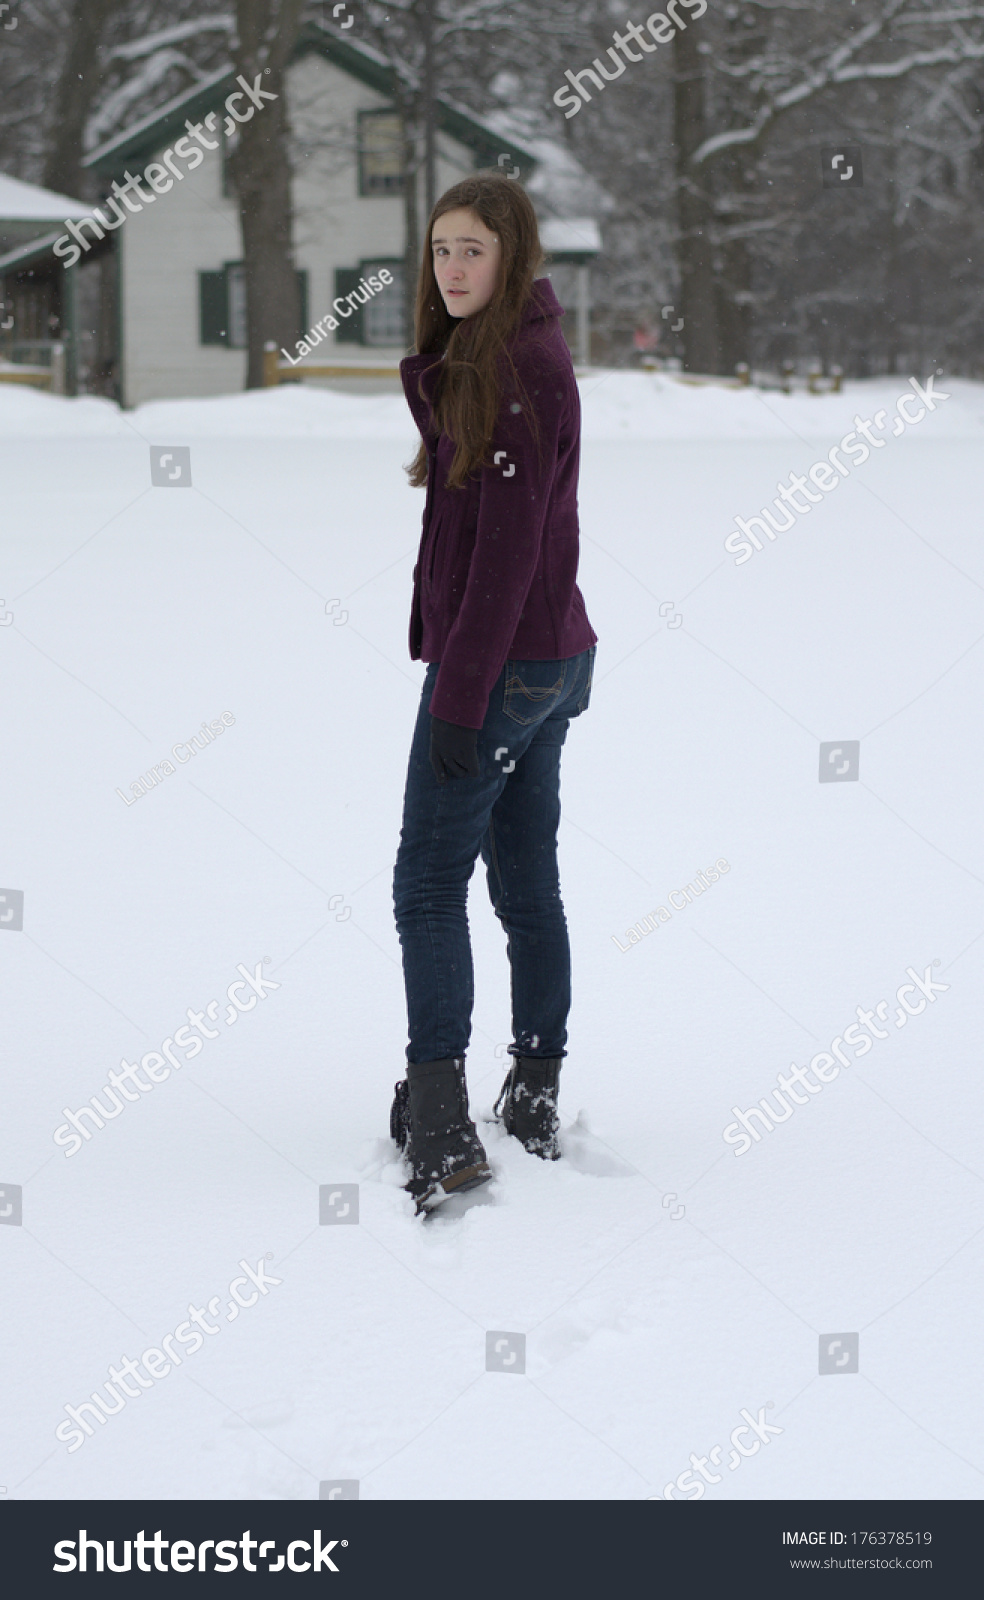 Teen Aged Girl Walking Away In The Snow Looking Back With Irritated Expression Wearing Plum